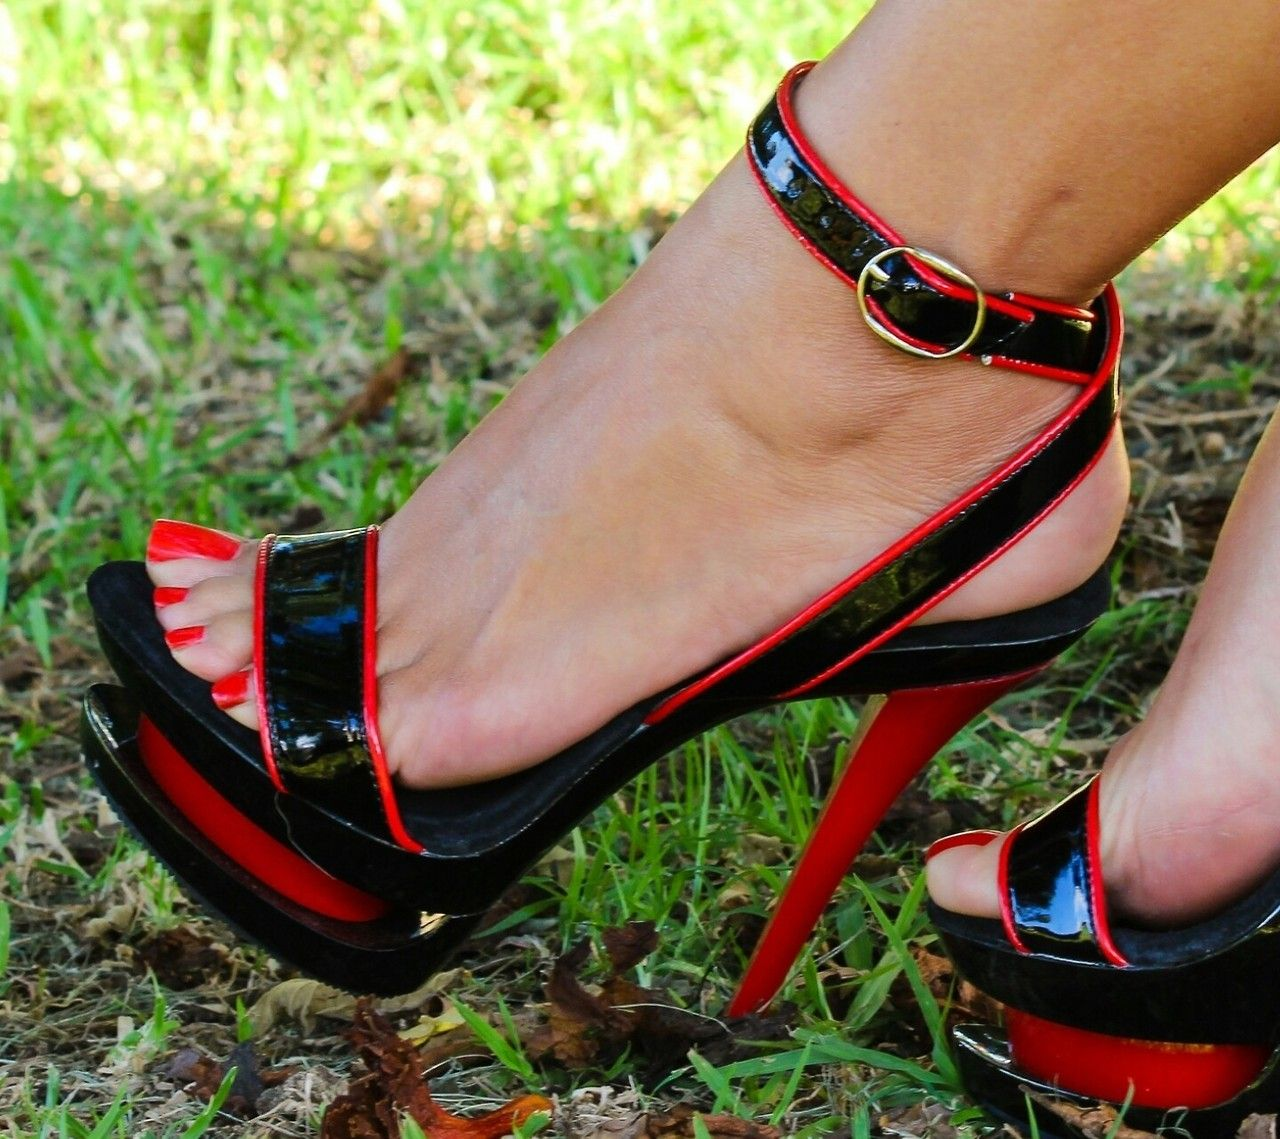 fde8f7ece 20 Women High Heels Ideas That Make Women Look More Beautiful